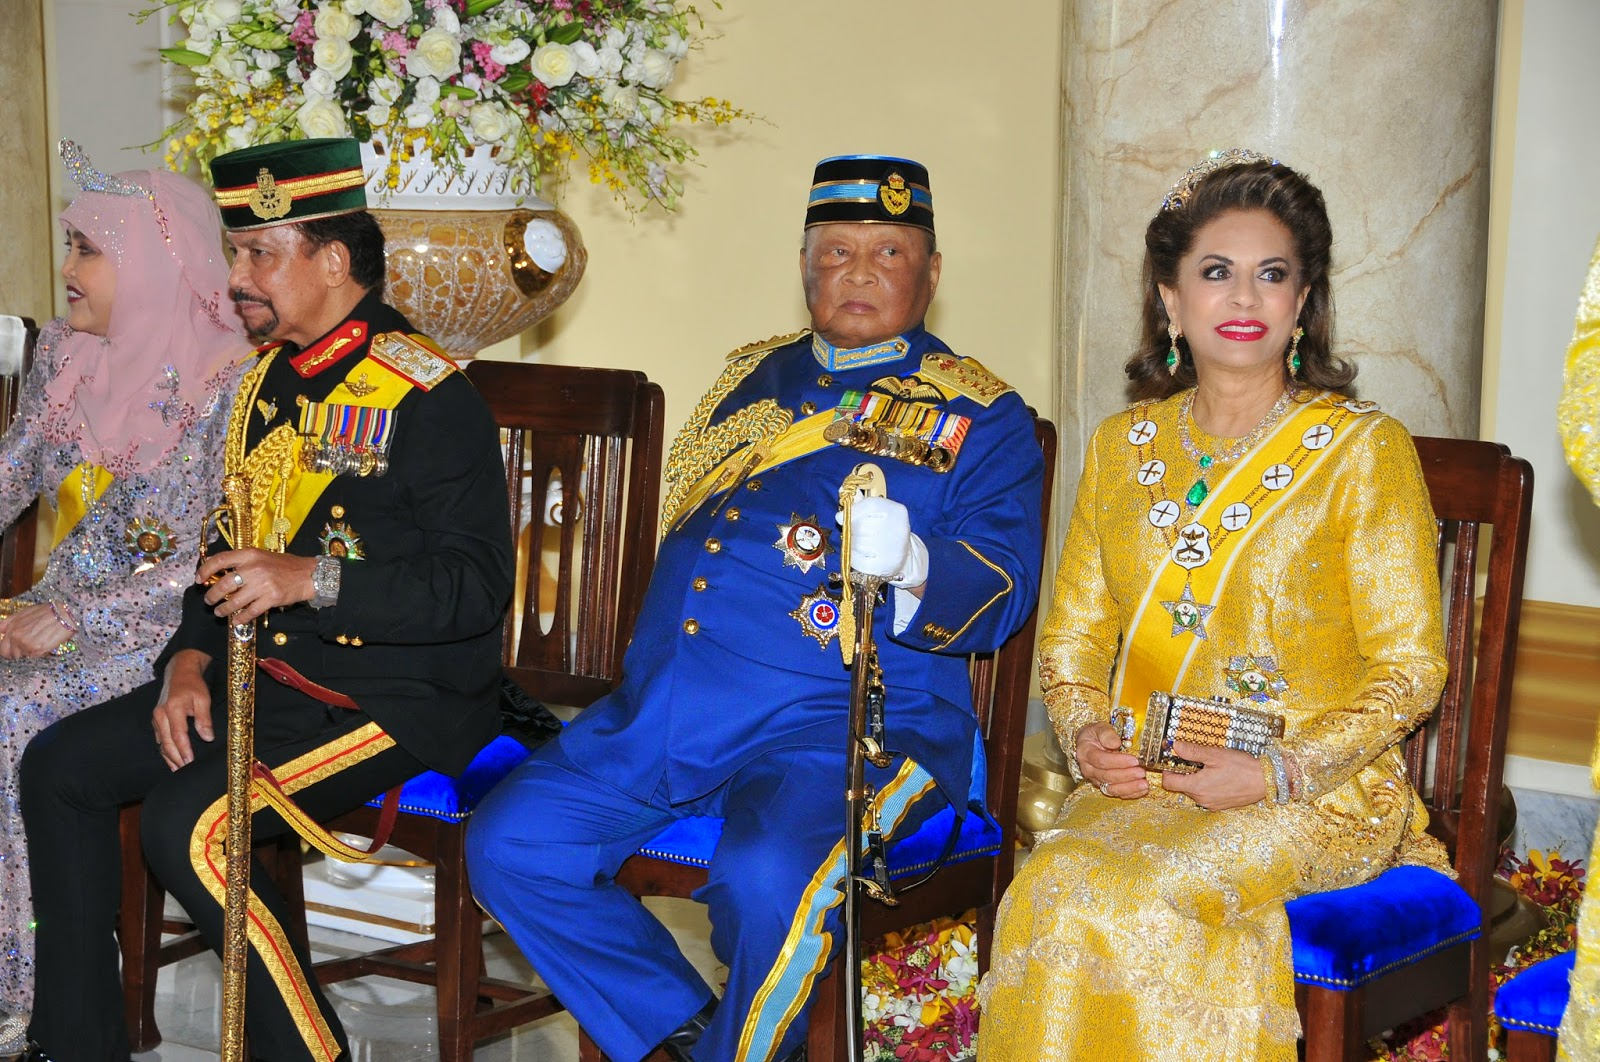 Kee Hua Chee Live!: ARRIVAL OF HIS ROYAL HIGHNESS THE SULTAN OF PAHANG, SULTAN AHMAD SHAH AND ...